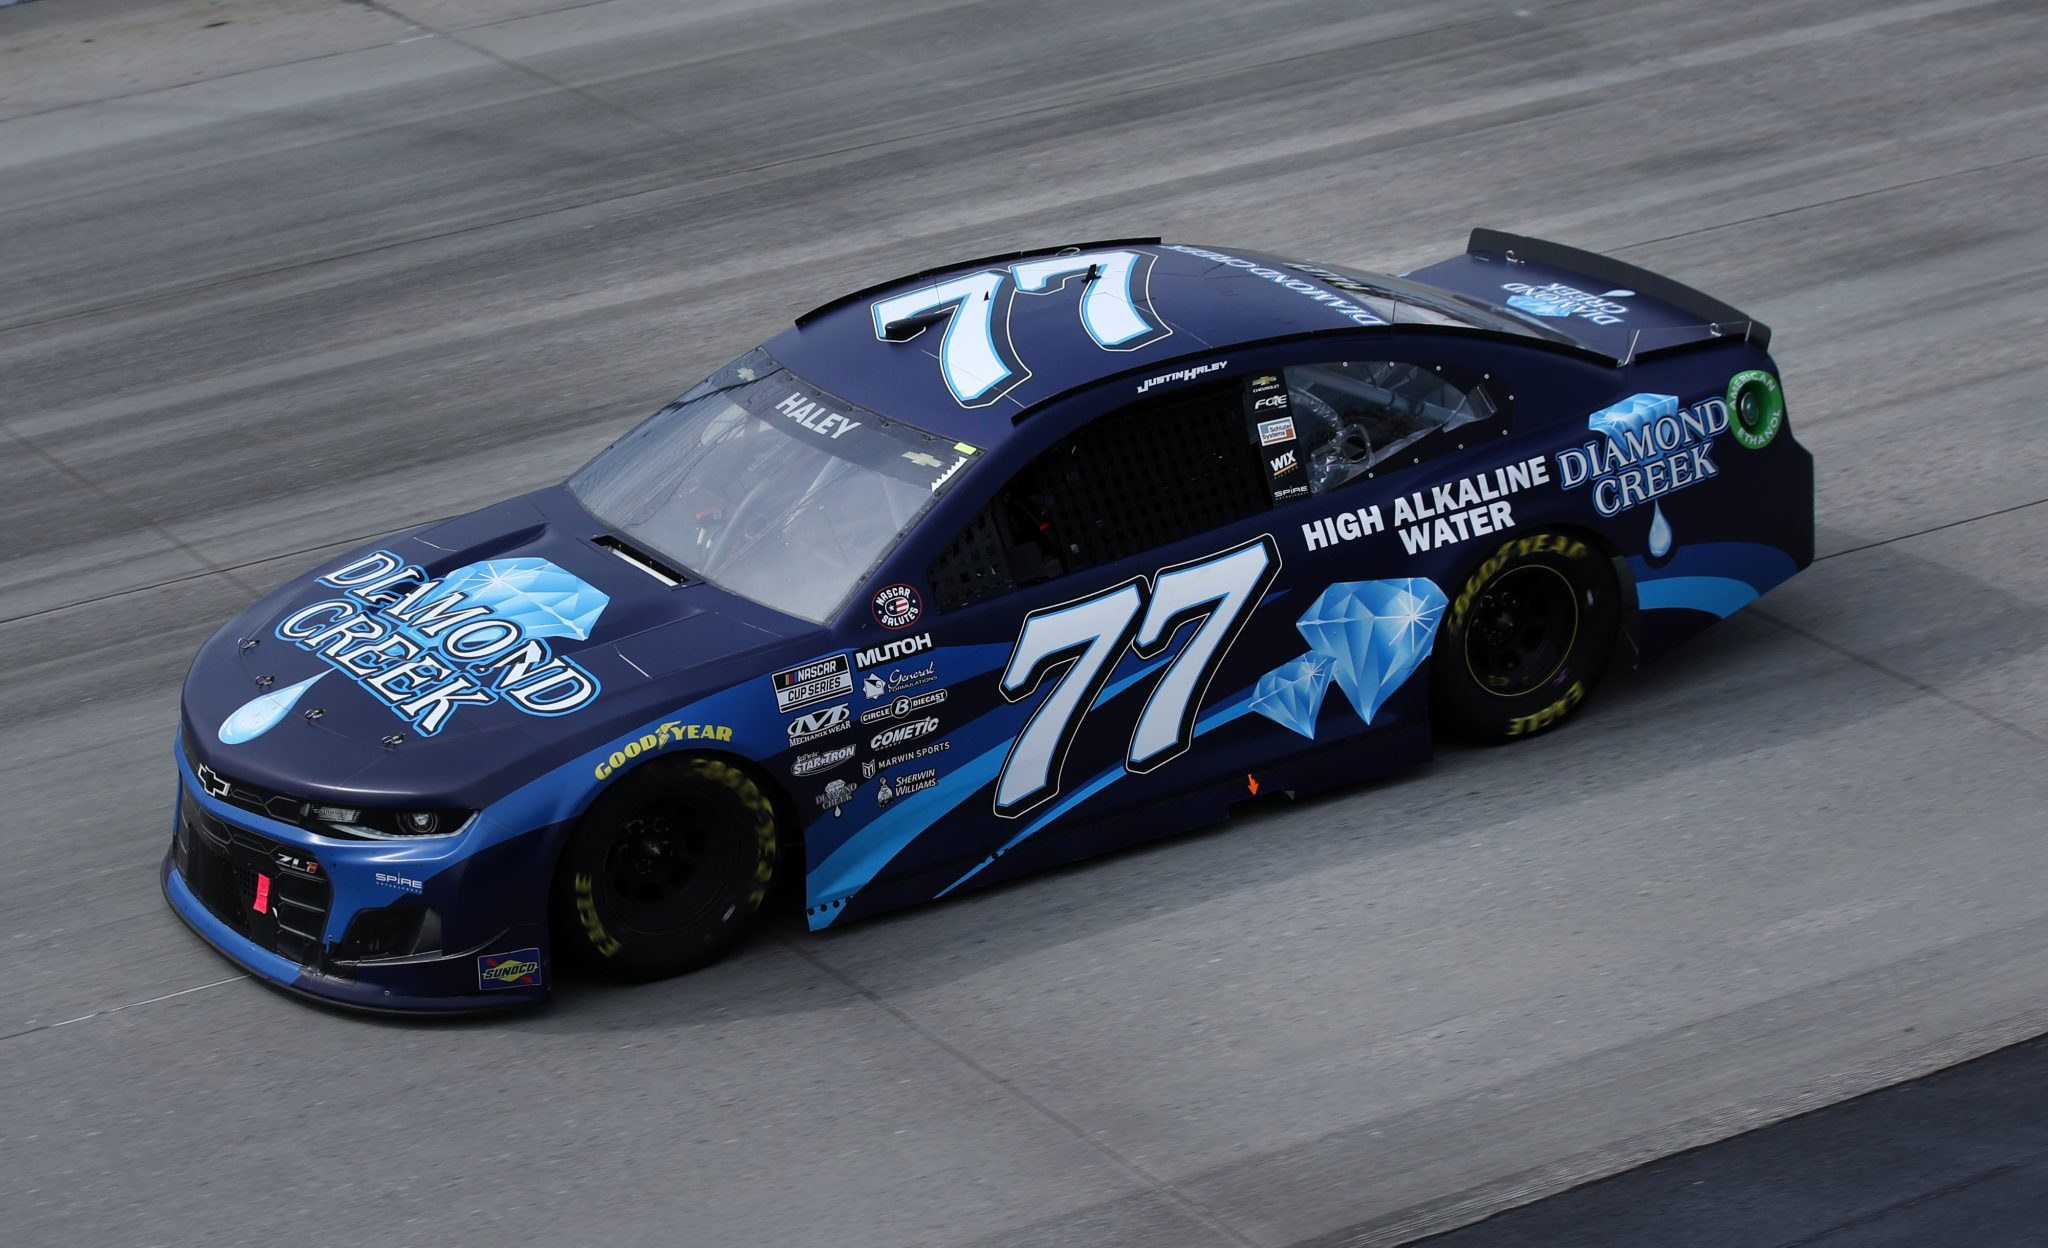 DOVER, DELAWARE - MAY 16: Justin Haley, driver of the #77 Diamond Creek Water Chevrolet, races during the NASCAR Cup Series Drydene 400 at Dover International Speedway on May 16, 2021 in Dover, Delaware. (Photo by Sean Gardner/Getty Images) | Getty Images